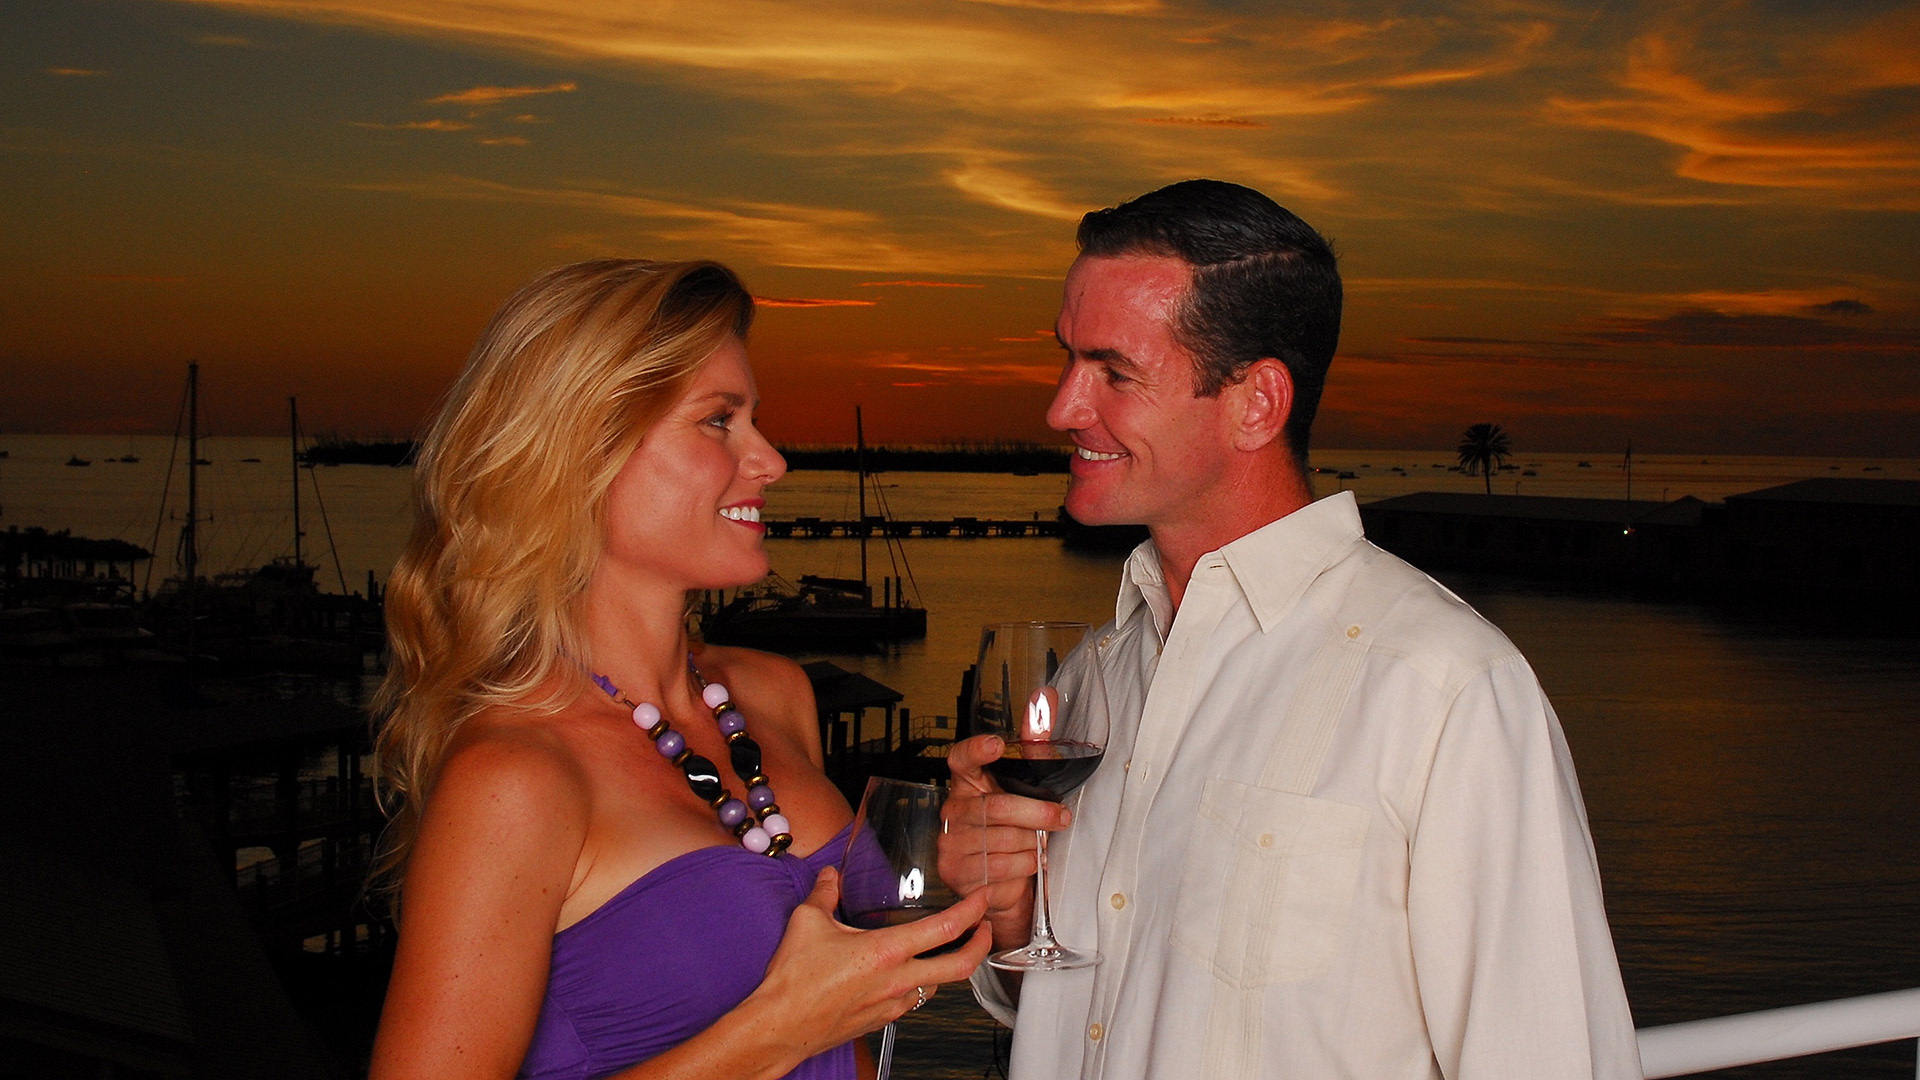 picture of couple outdoors holding wine glasses with key west harbor in background at sunset